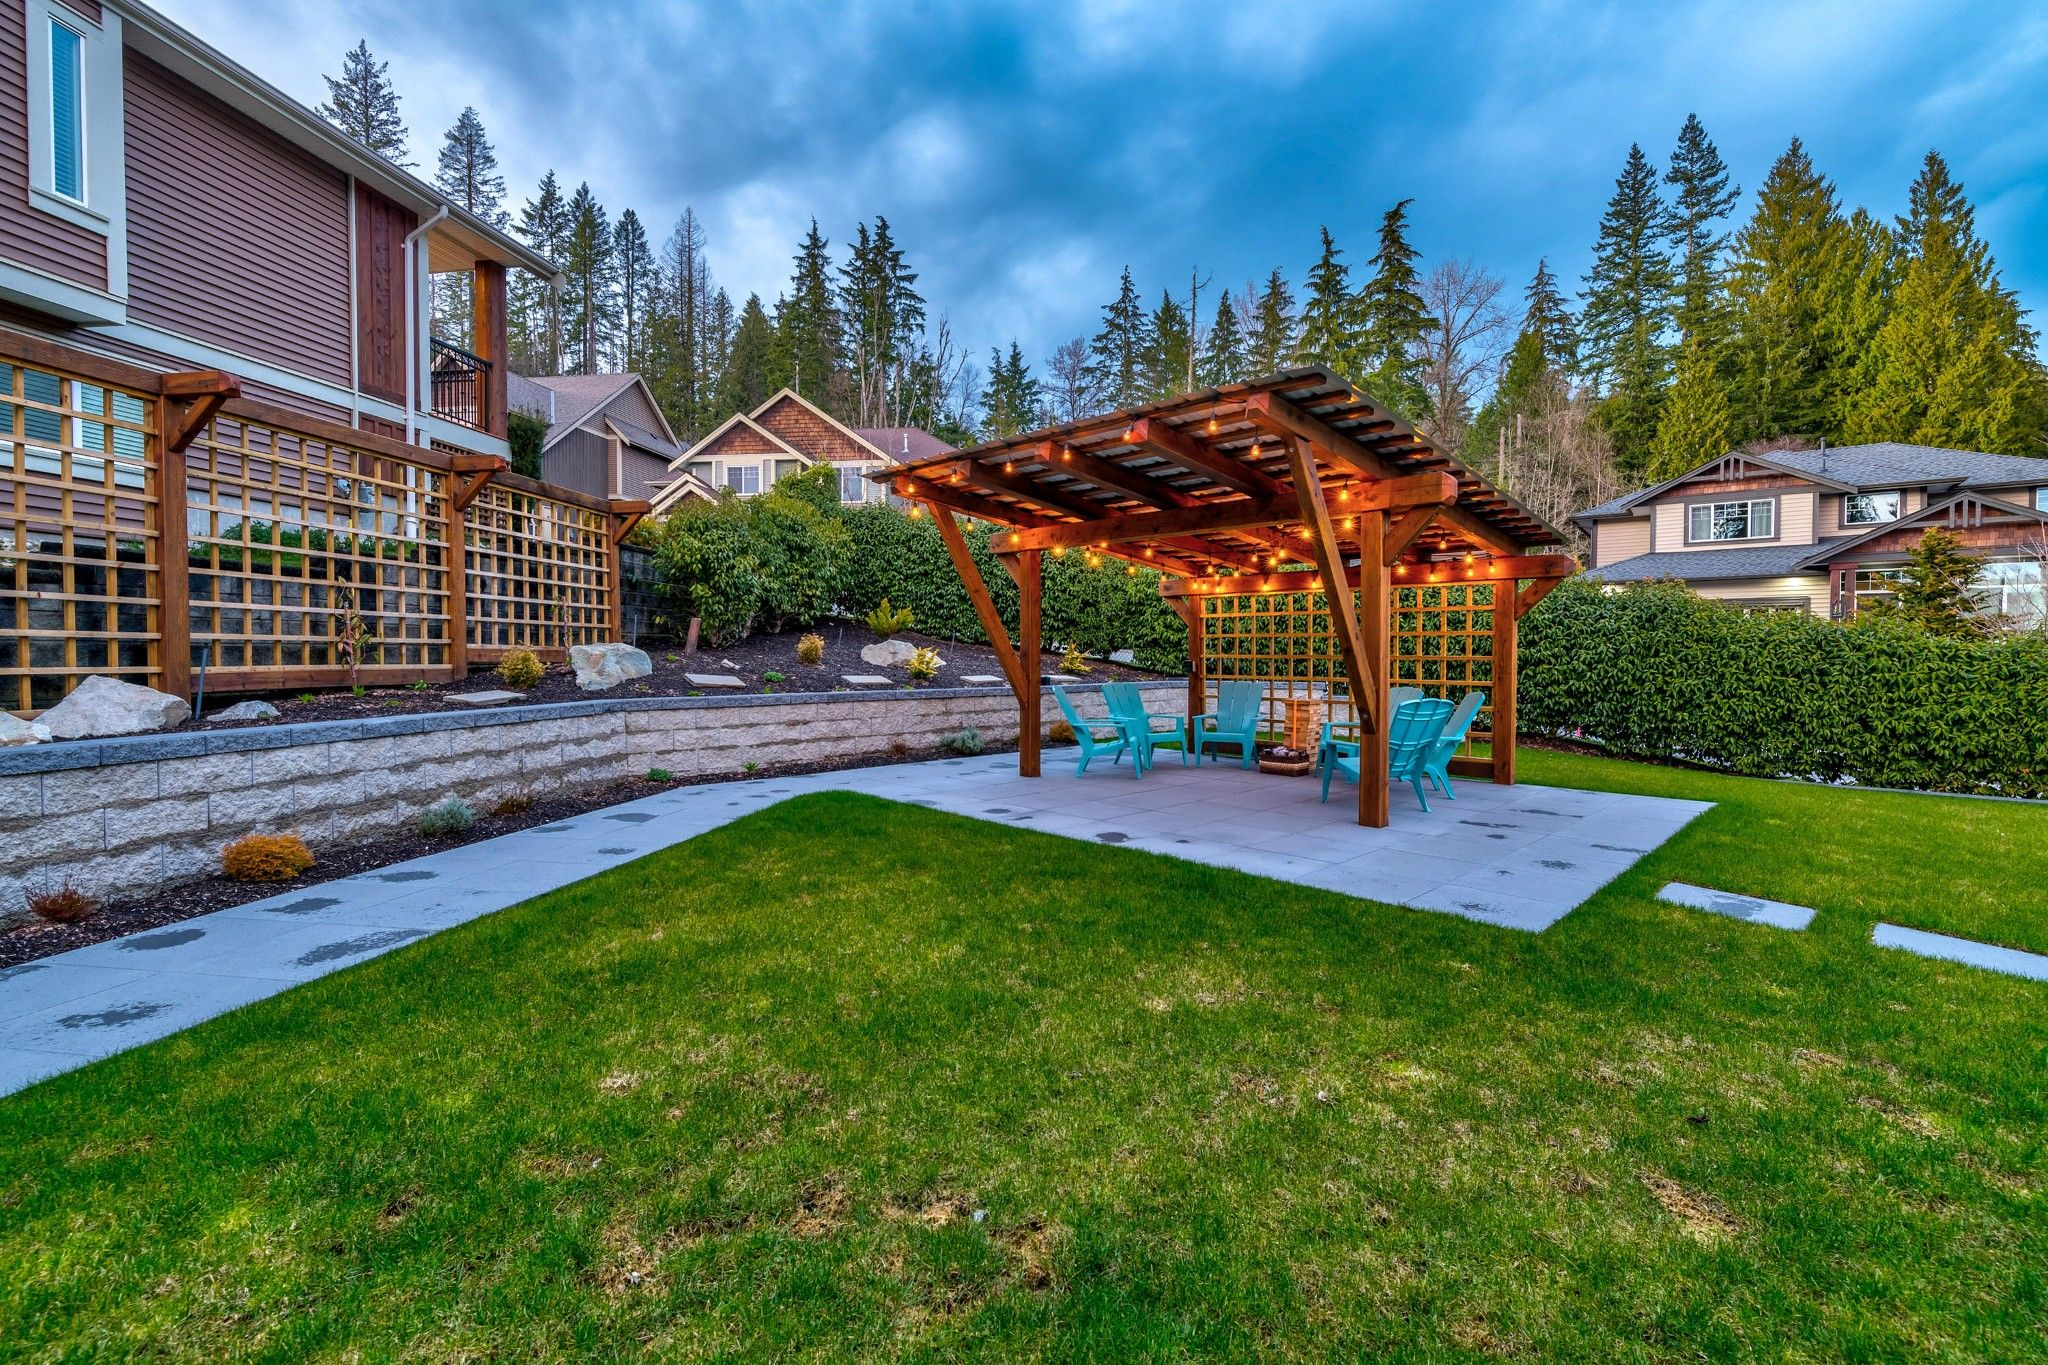 Photo 25: Photos: 16 13210 SHOESMITH CRESCENT in Maple Ridge: Silver Valley House for sale : MLS®# R2448043